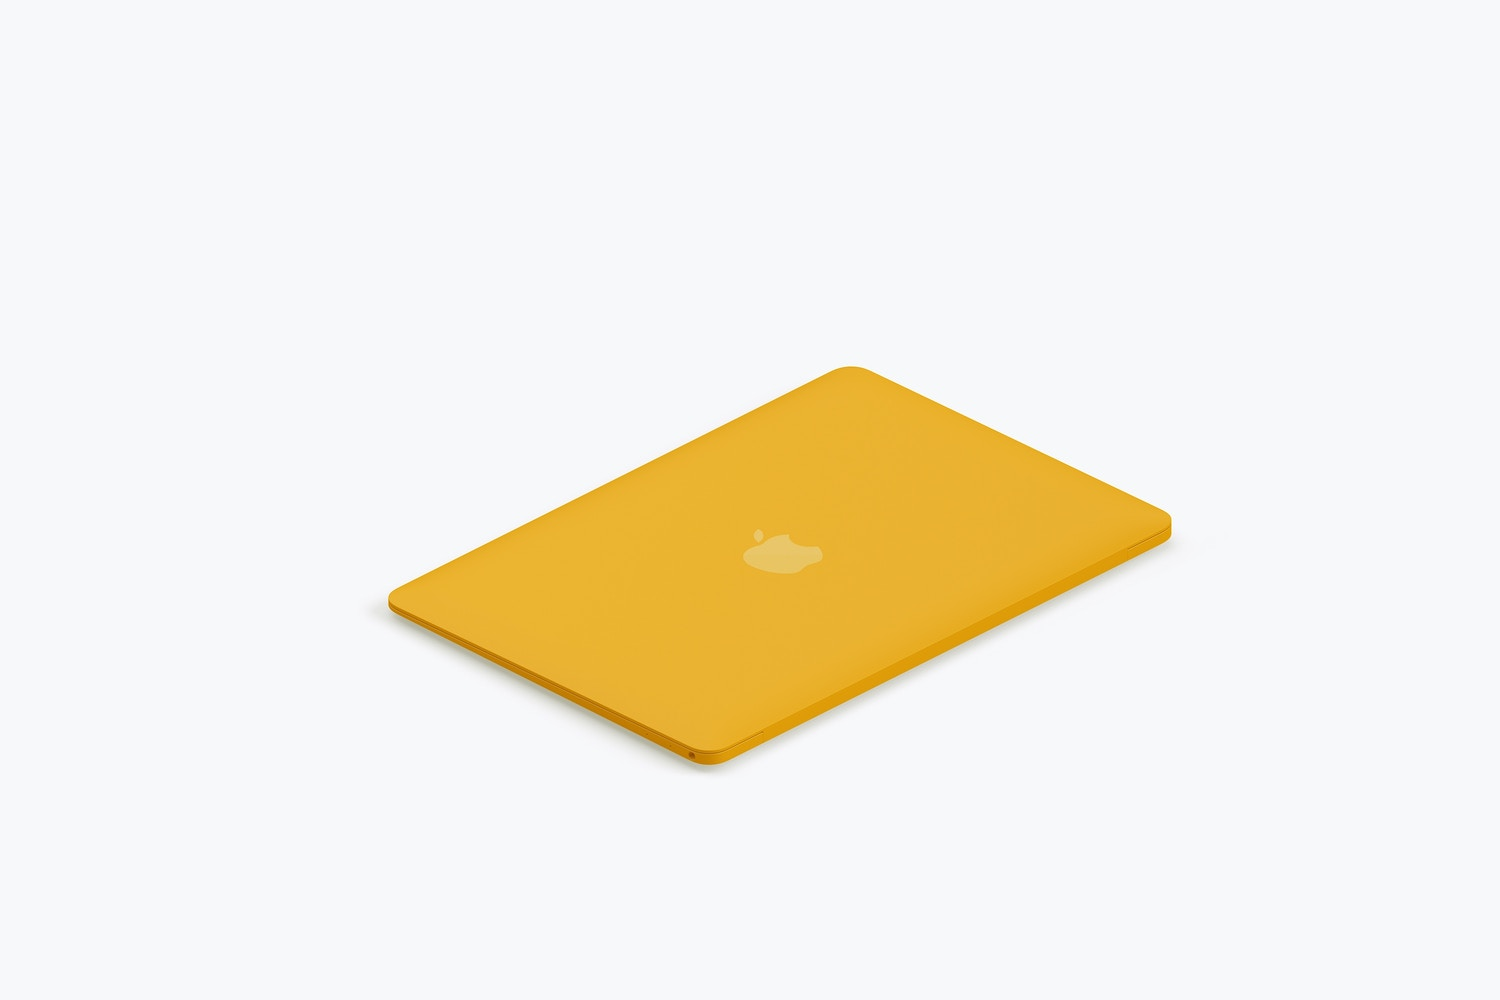 Clay MacBook Mockup, Isometric Left View 03 (4) by Original Mockups on Original Mockups